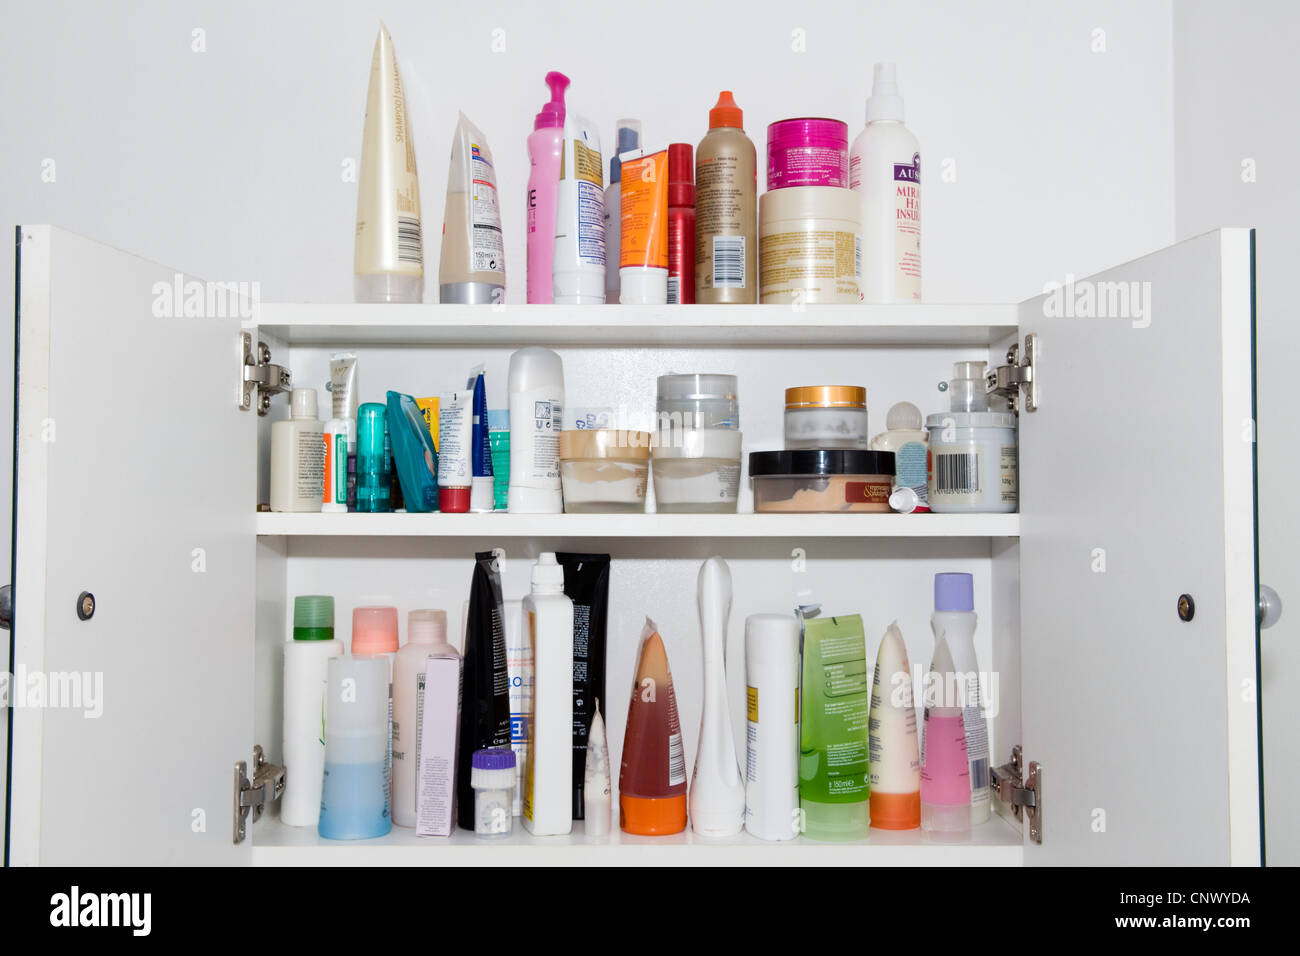 Bathroom cabinet with doors open showing contents of lots of different toiletries - Stock Image